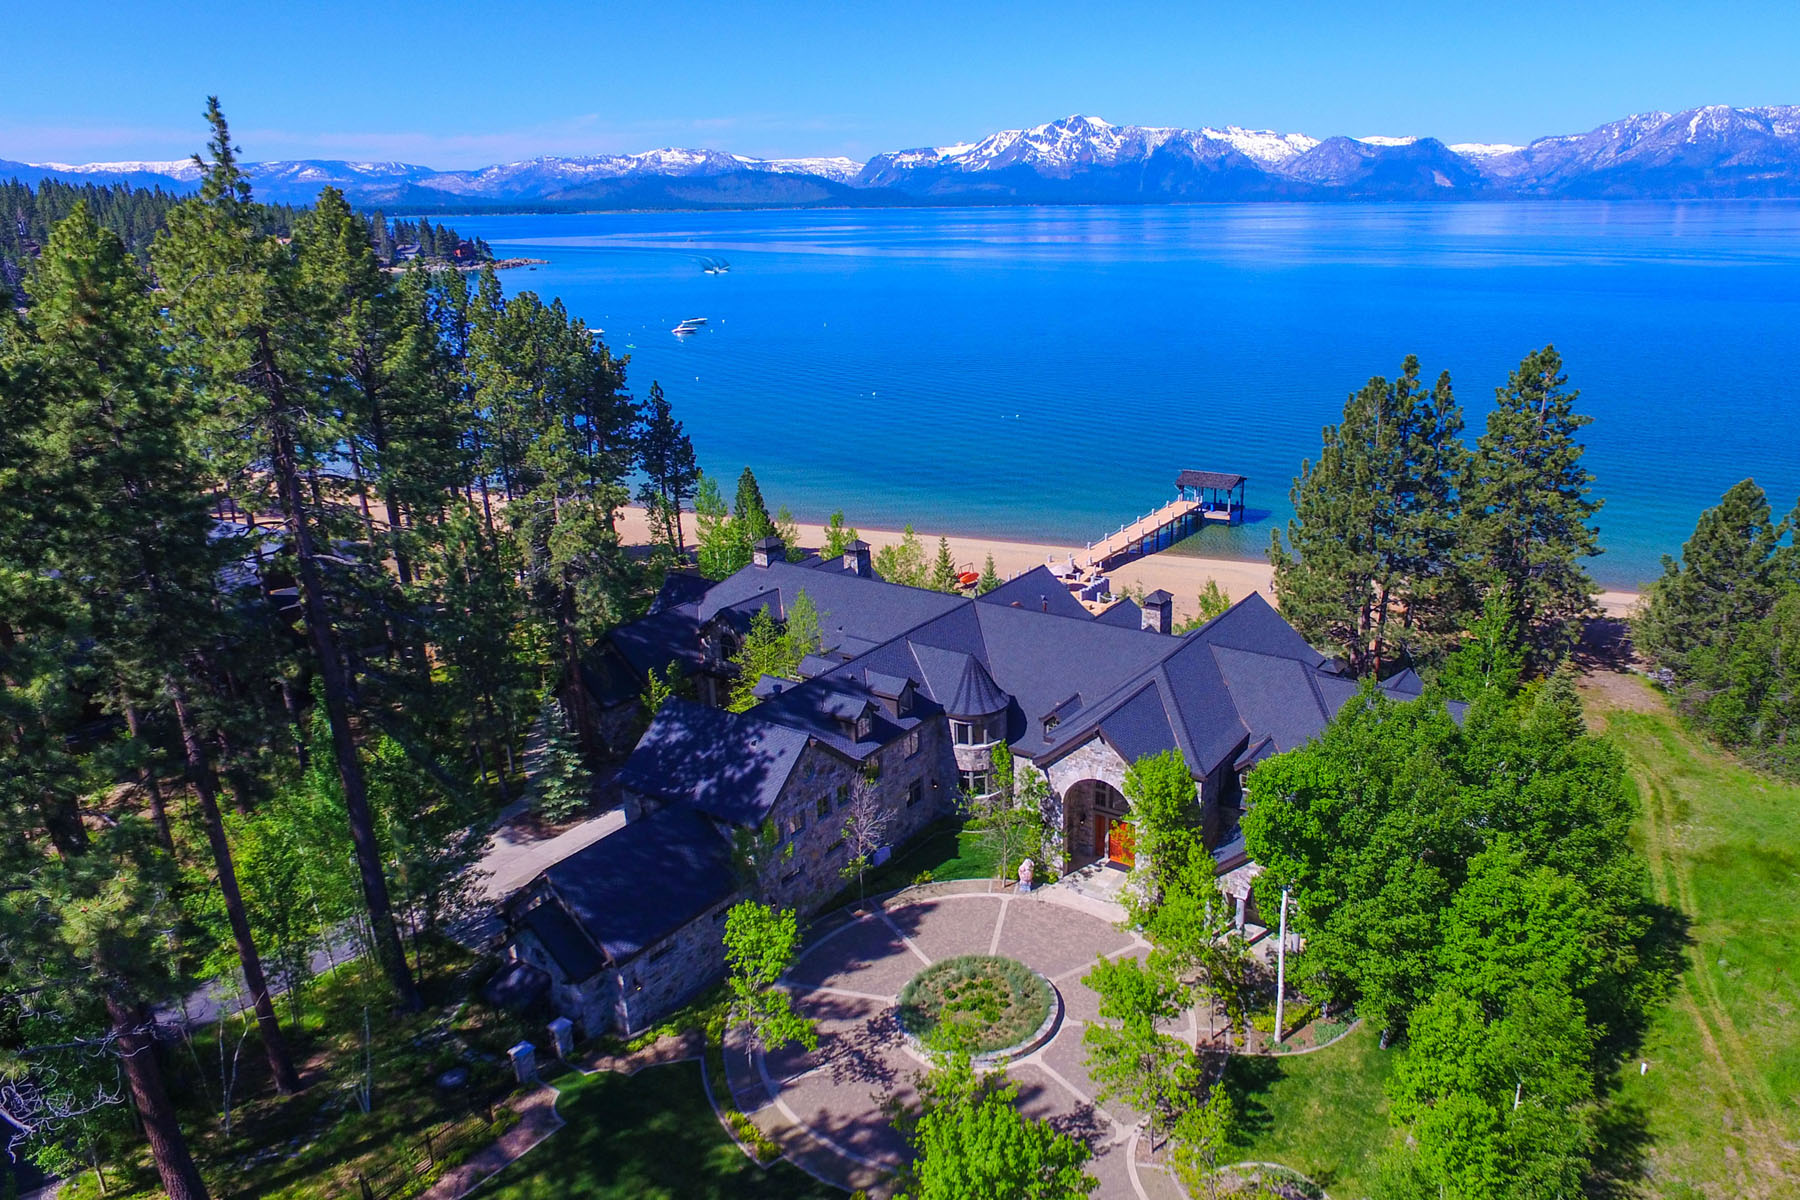 農場 / 牧場 / 種植場 為 出售 在 550 Sierra Sunset Lane, Zephyr Cove, Nevada Zephyr Cove, 內華達州, 89448 Lake Tahoe, 美國